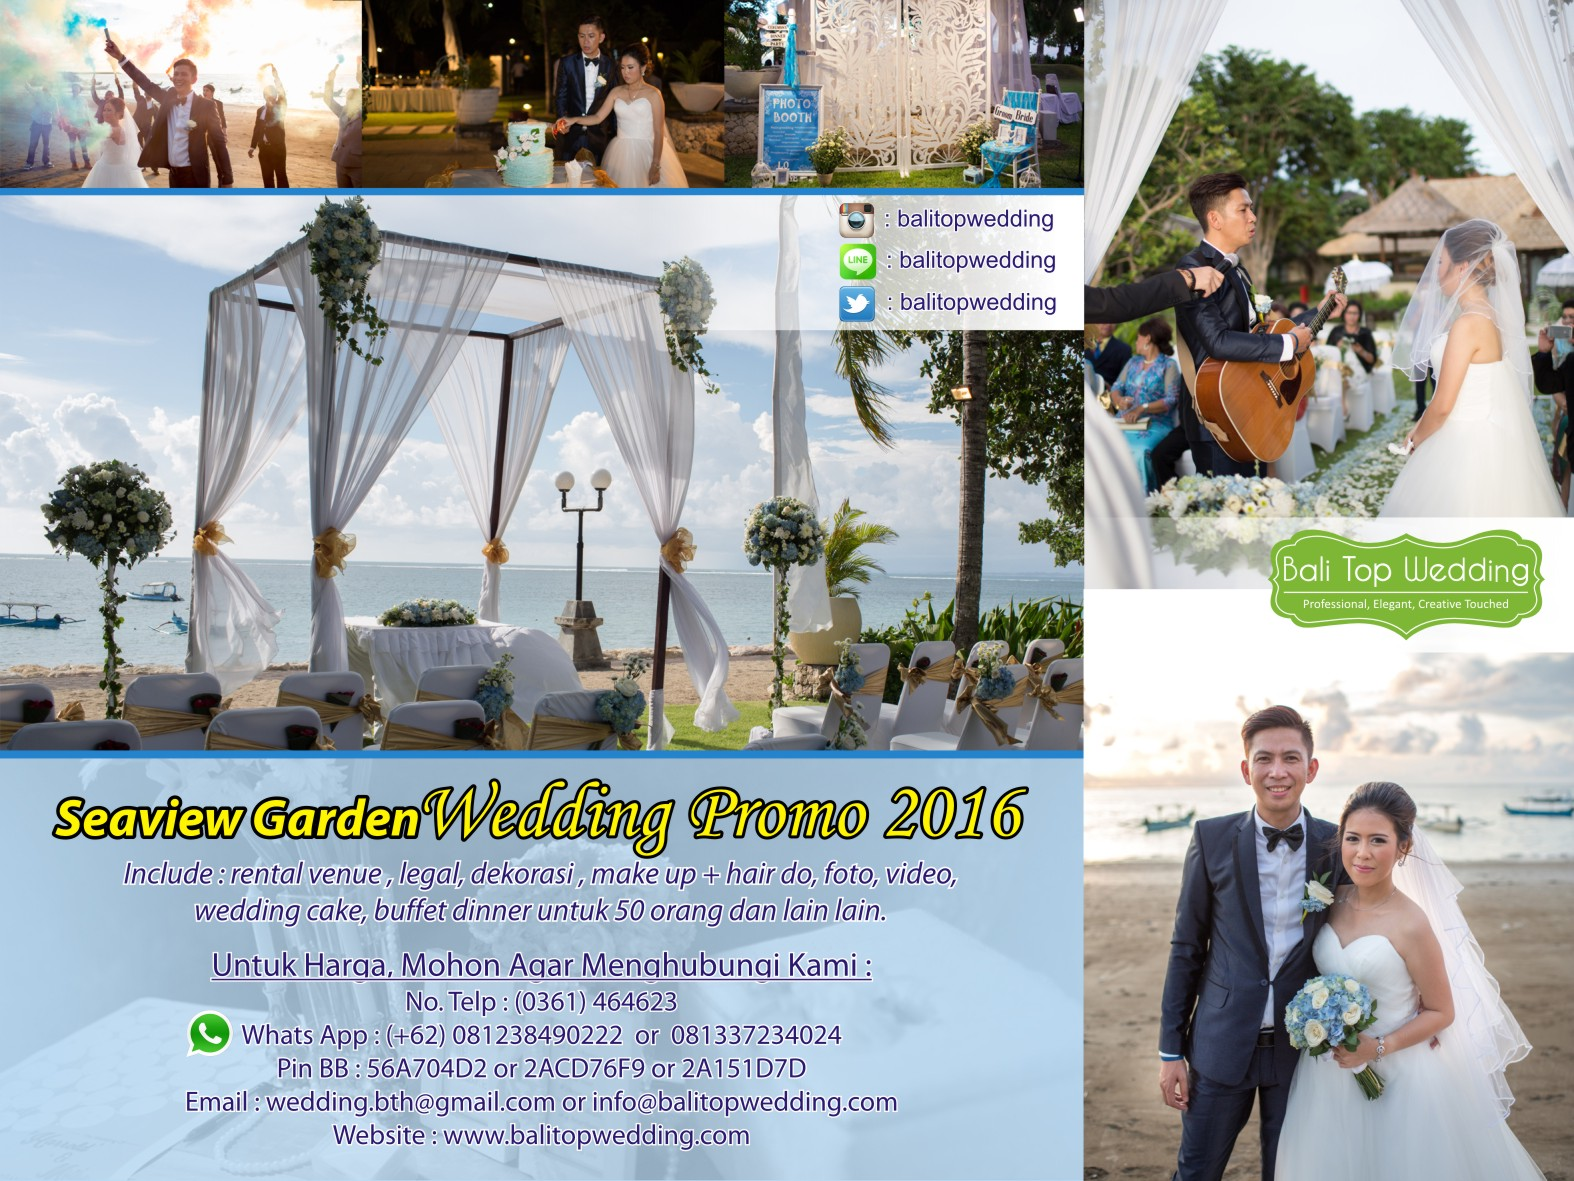 Promo wedding Garden Beach View